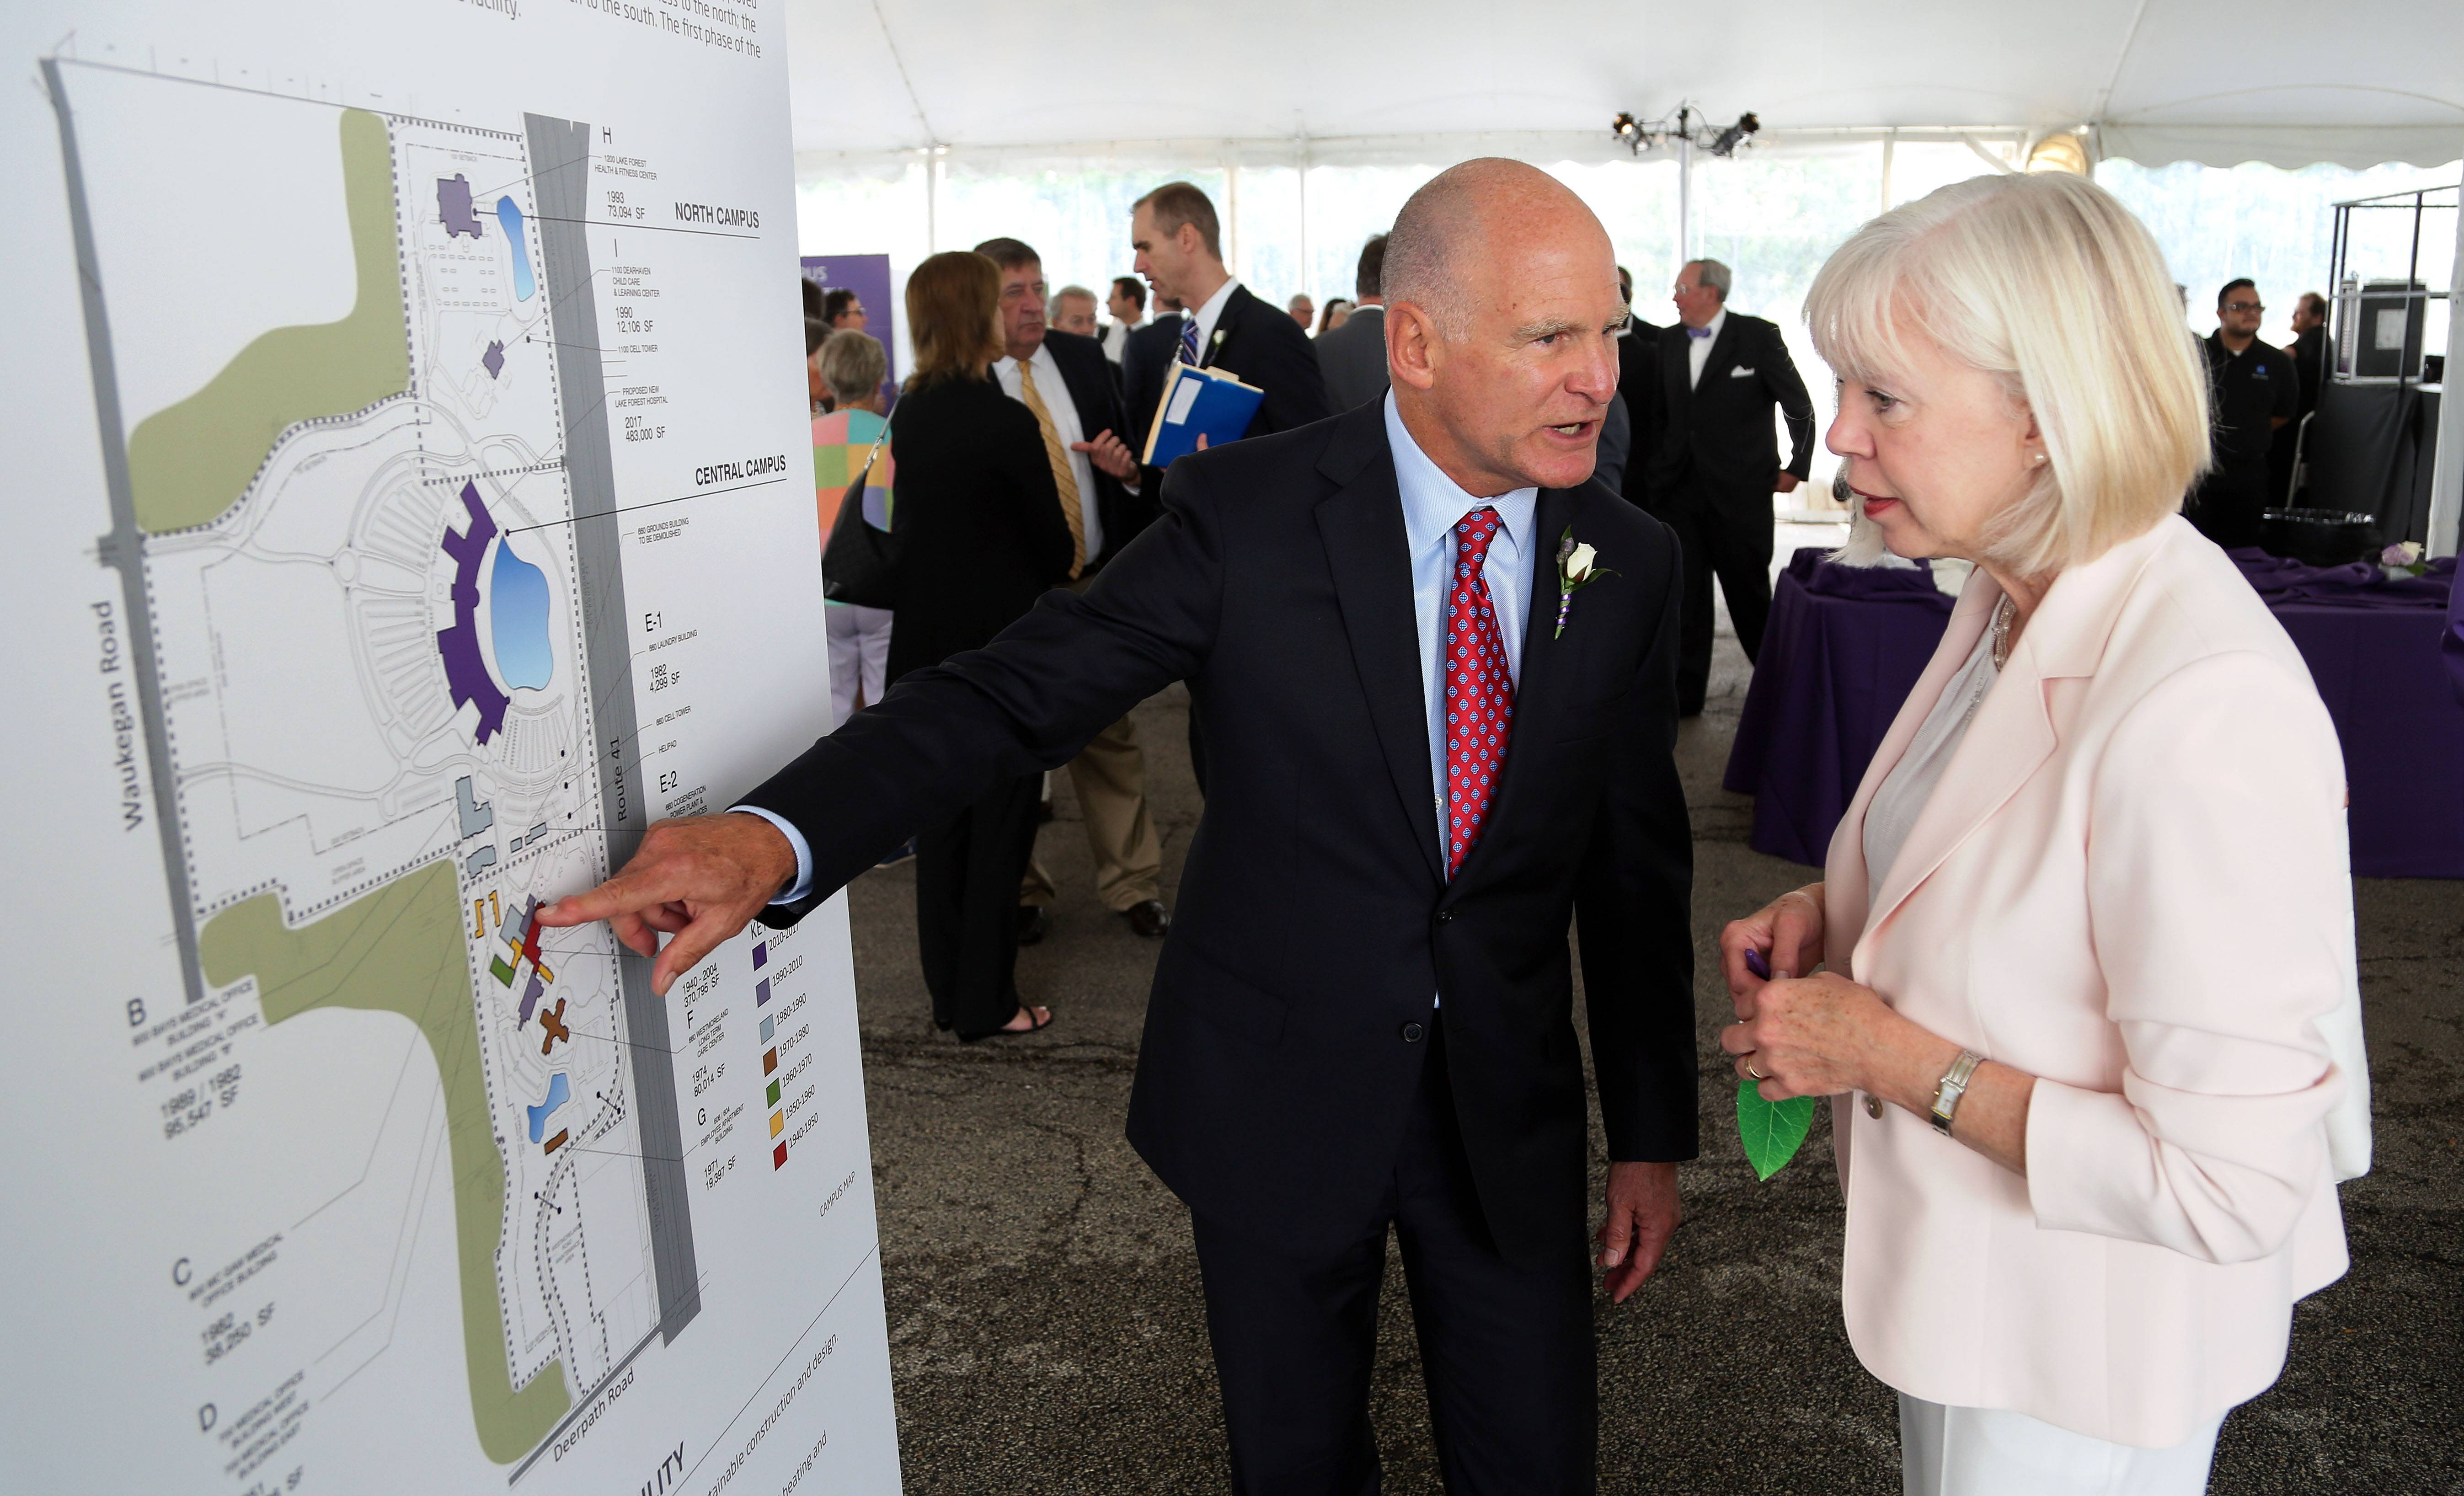 Tim Zoph, left, senior vice president of Northwestern Medicine, looks at plans with Maria Sinclair of the Grainger Foundation during Friday's groundbreaking ceremony for the new building at Northwestern Medicine Lake Forest Hospital.